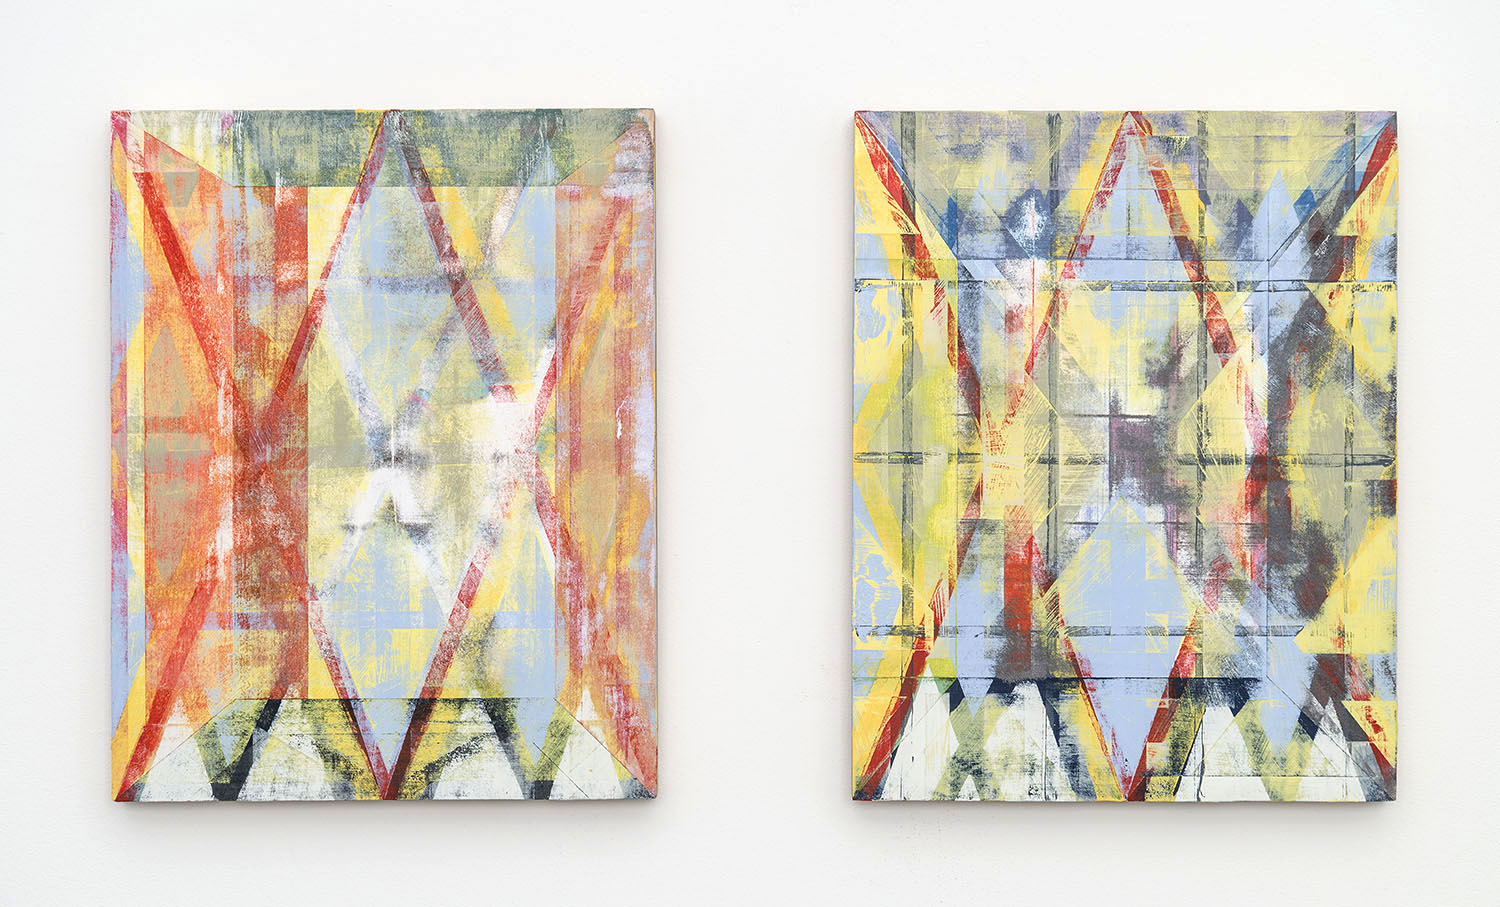 Paolo AraoYou x Me = Infinity (Diptych), 2015Acrylic on birch panelsEach: 14 x 11 inches(35.6 x 27.9 cm)